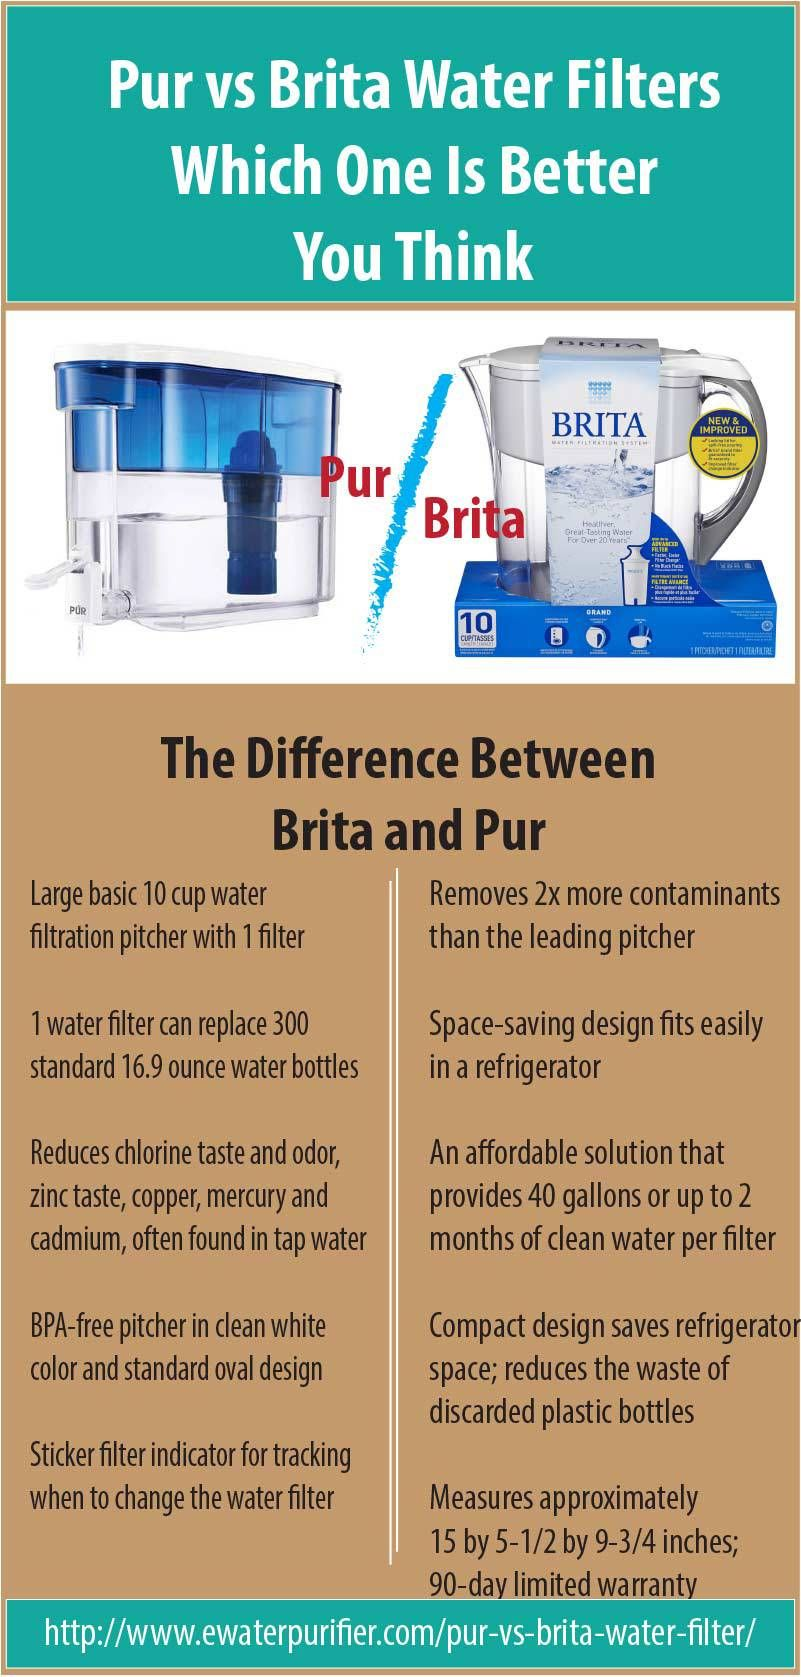 wo hottest water filter manufacturers in the USA are Brita